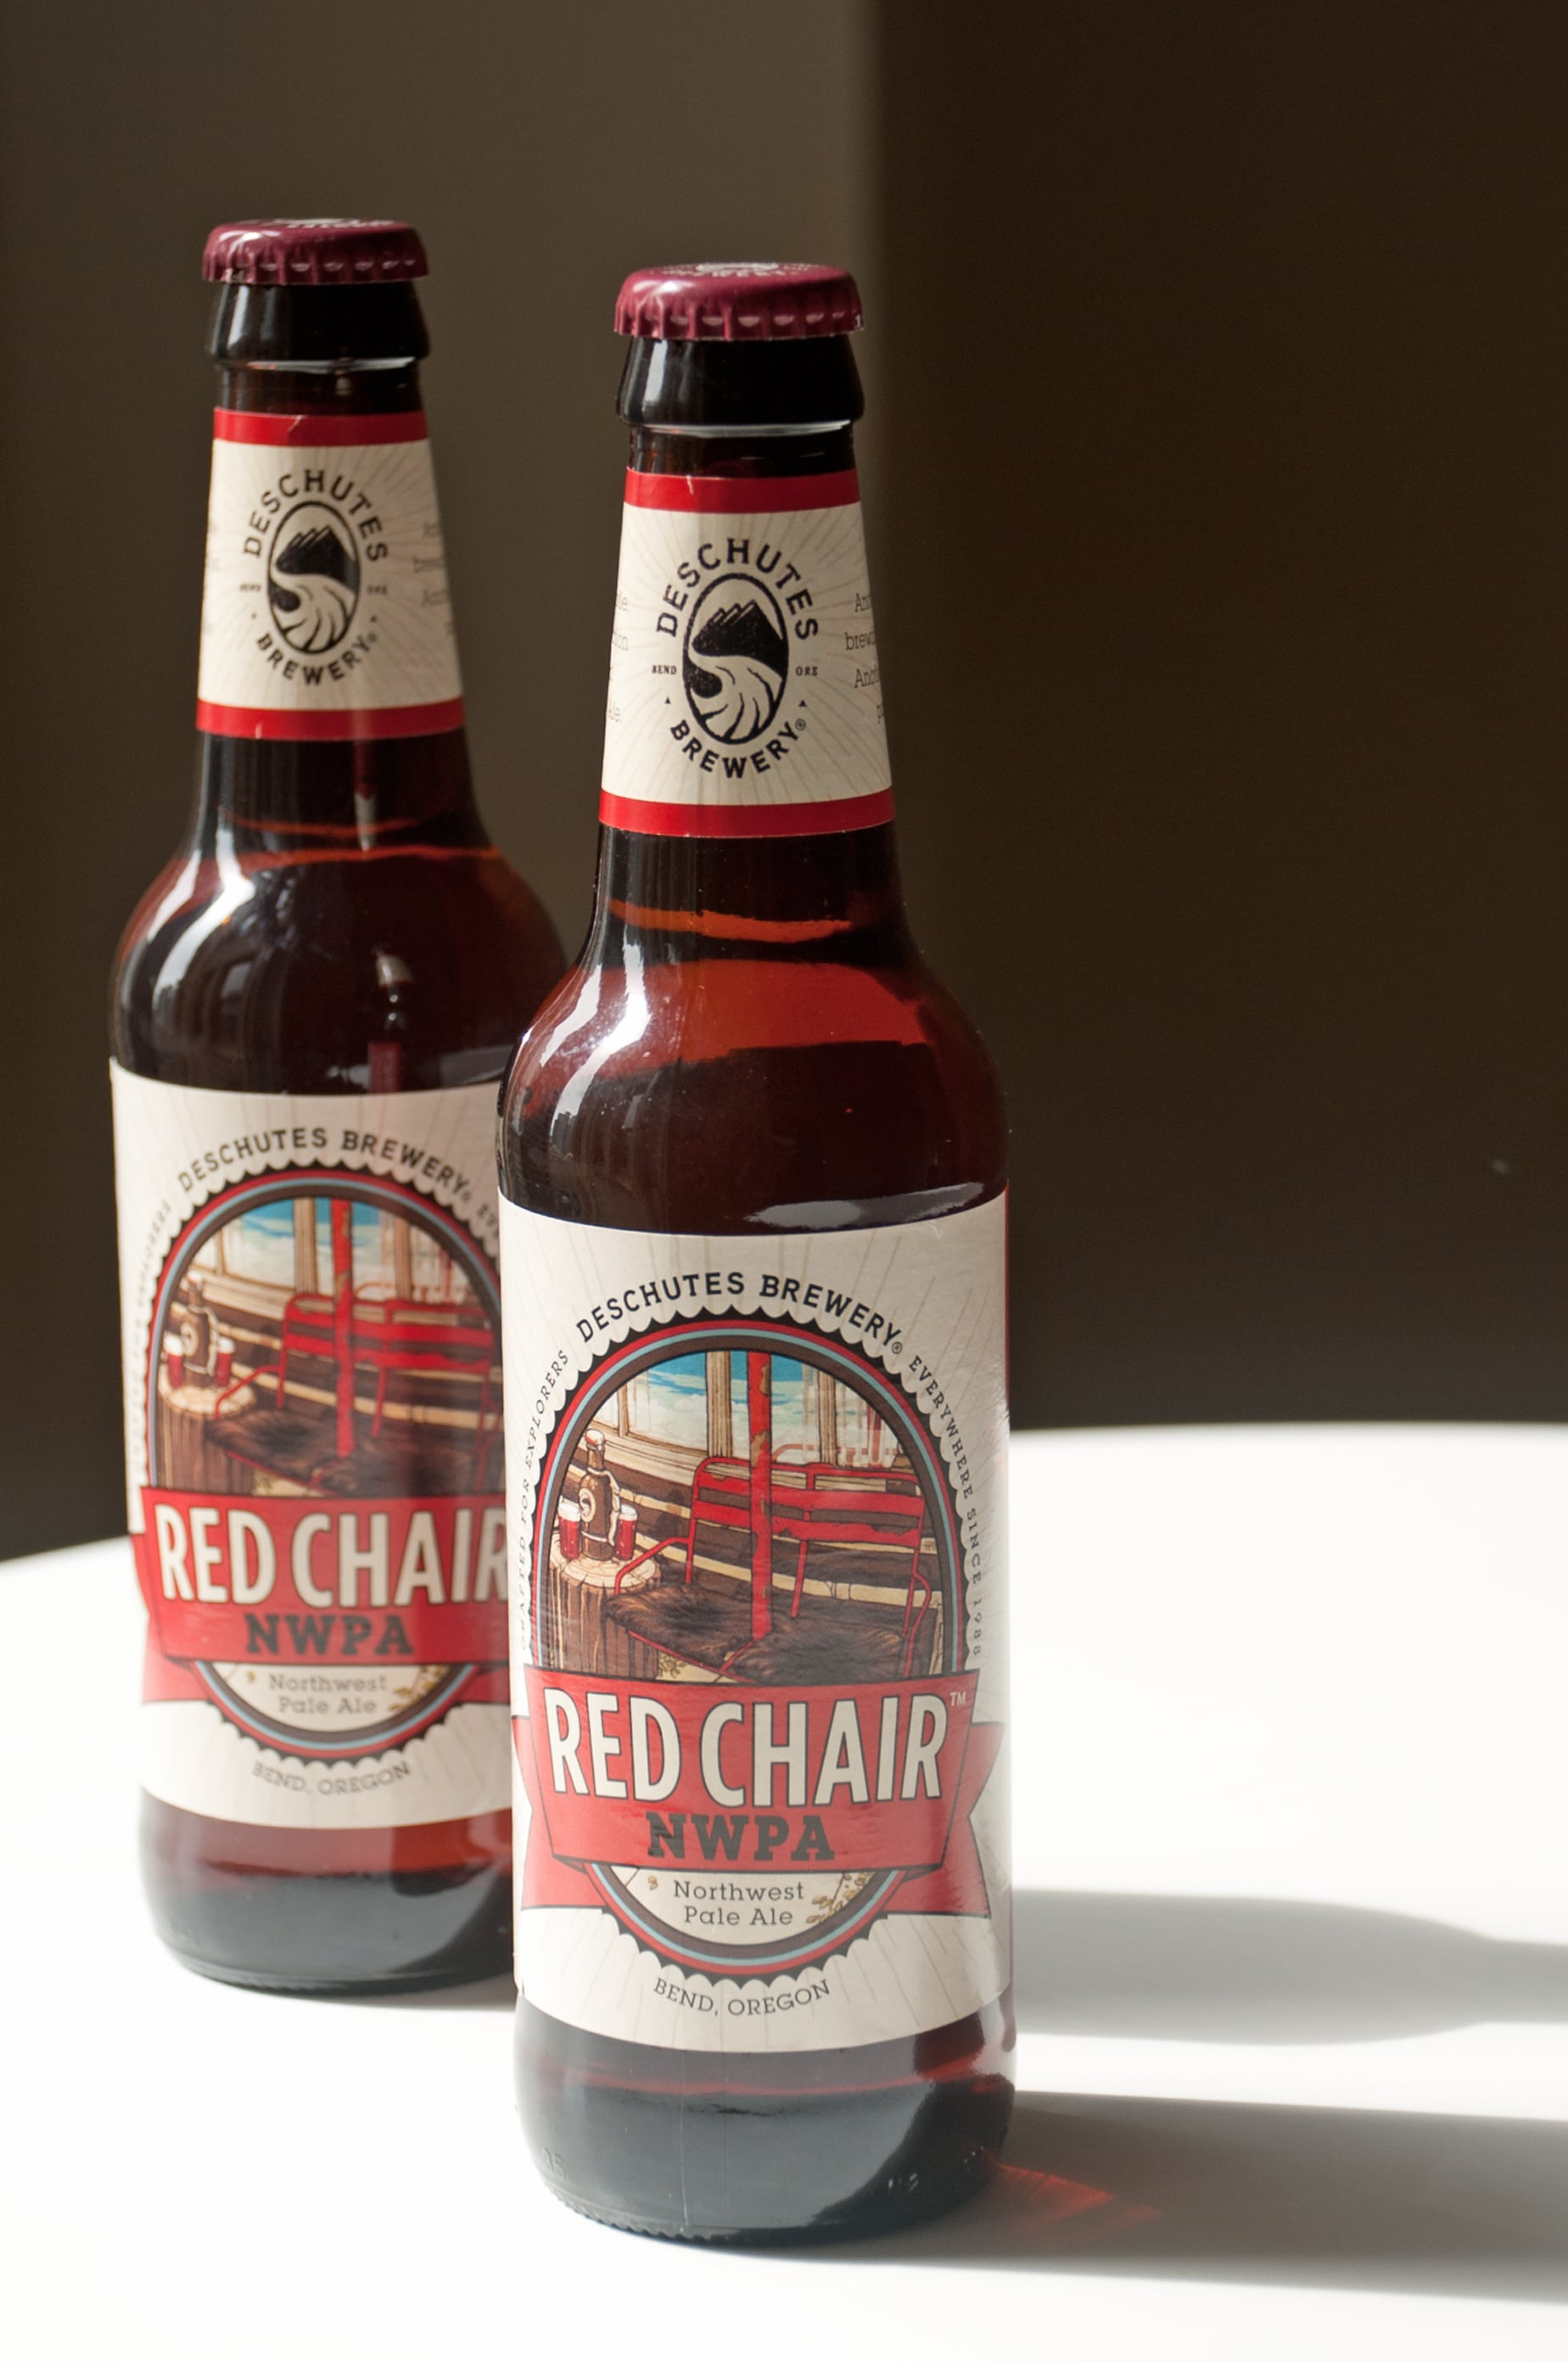 Deschutes Brewery Red Chair NWPA